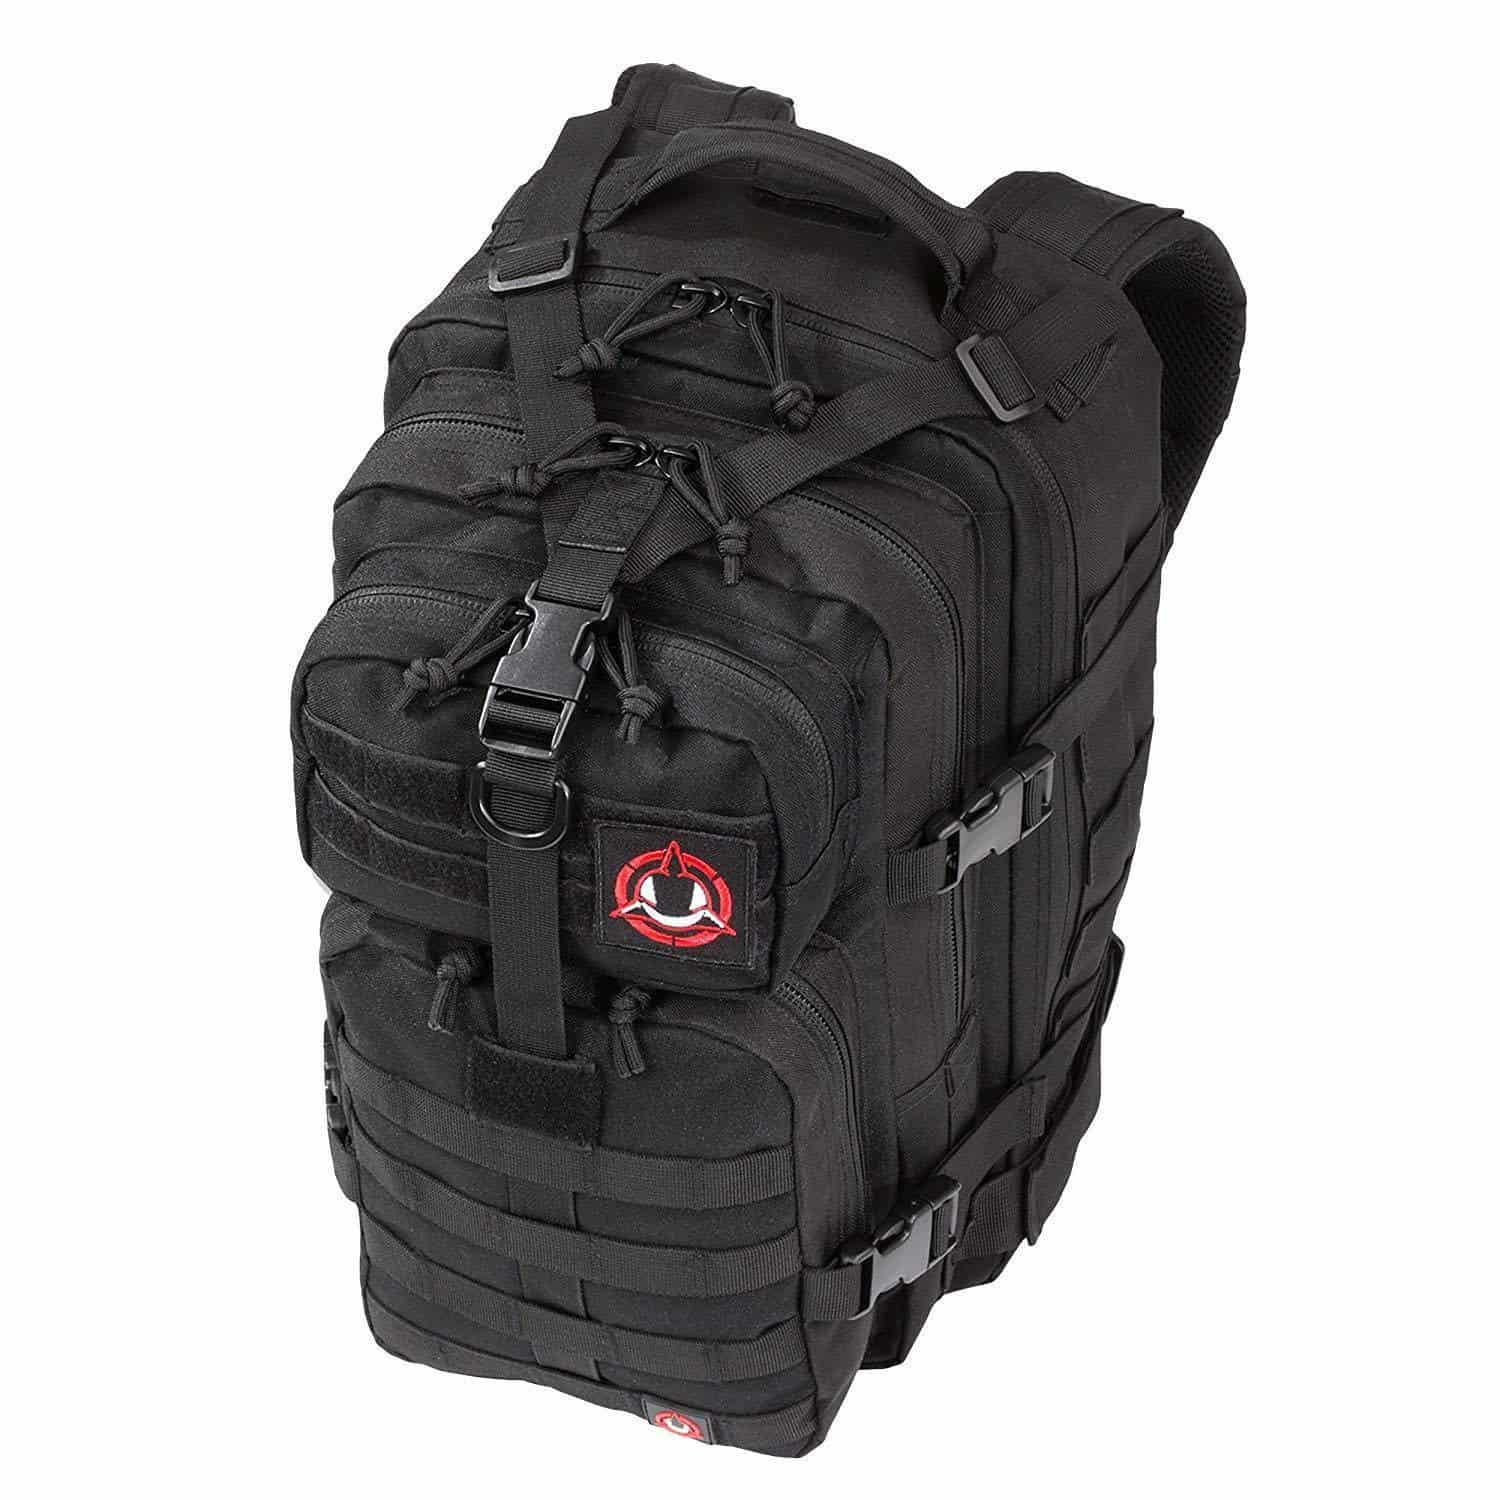 Army Grade Backpack